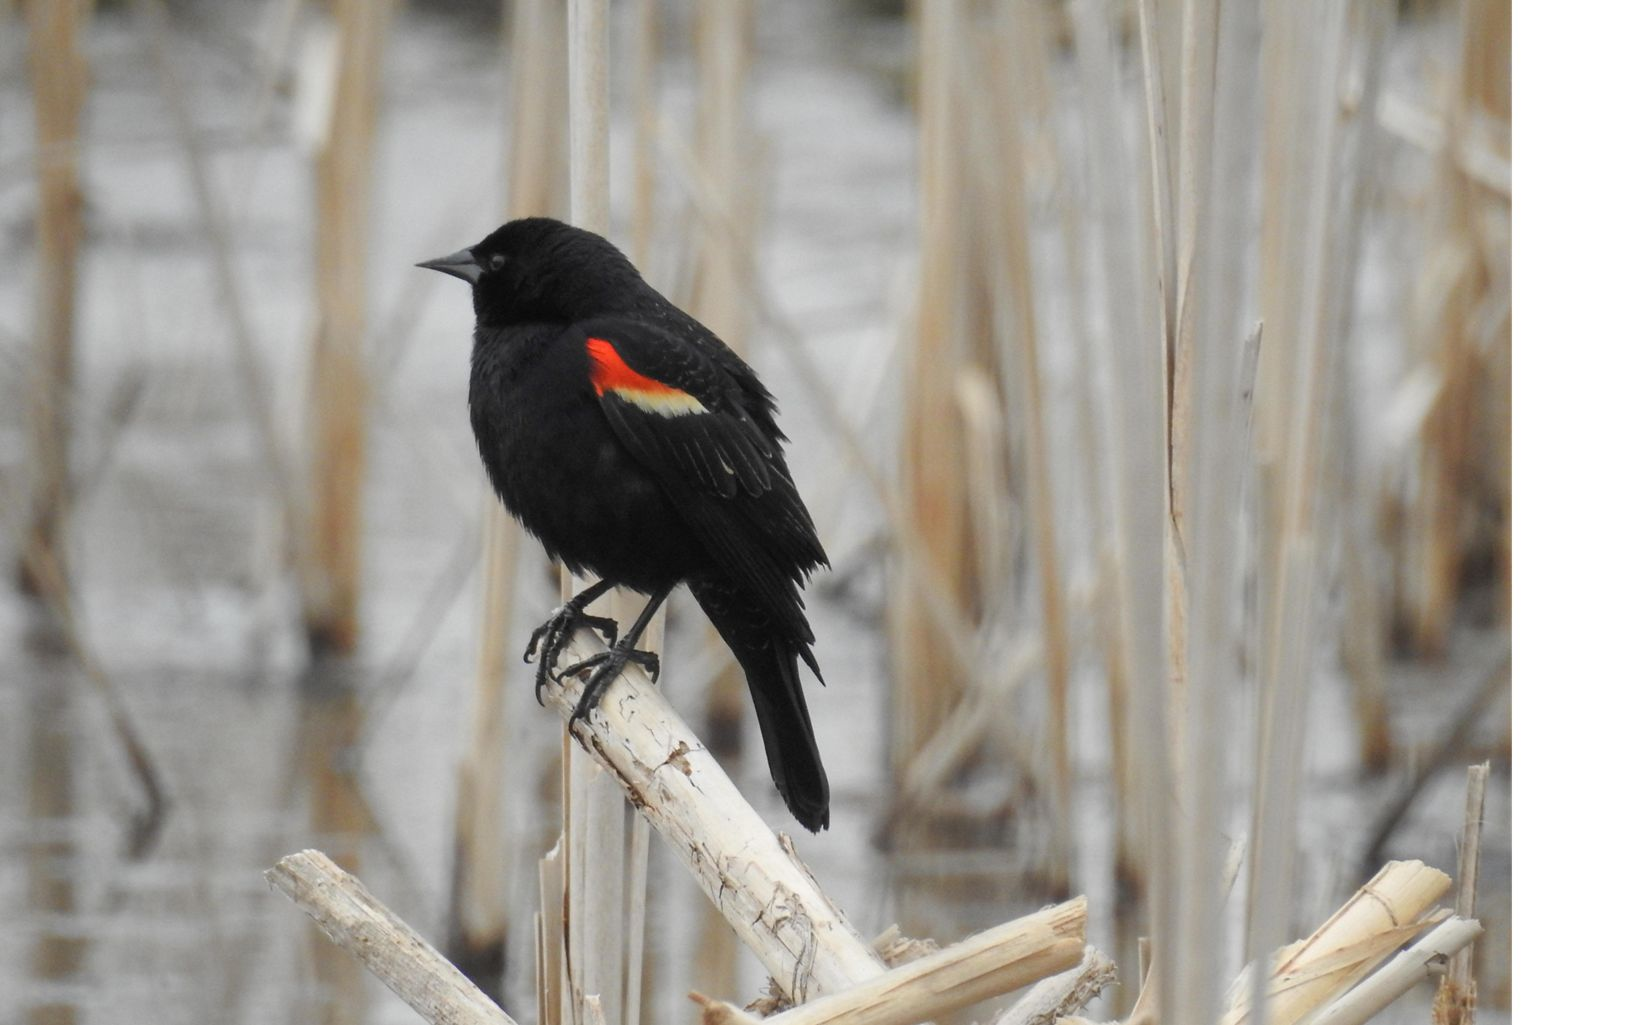 A black bird with red markings rests on a branch.